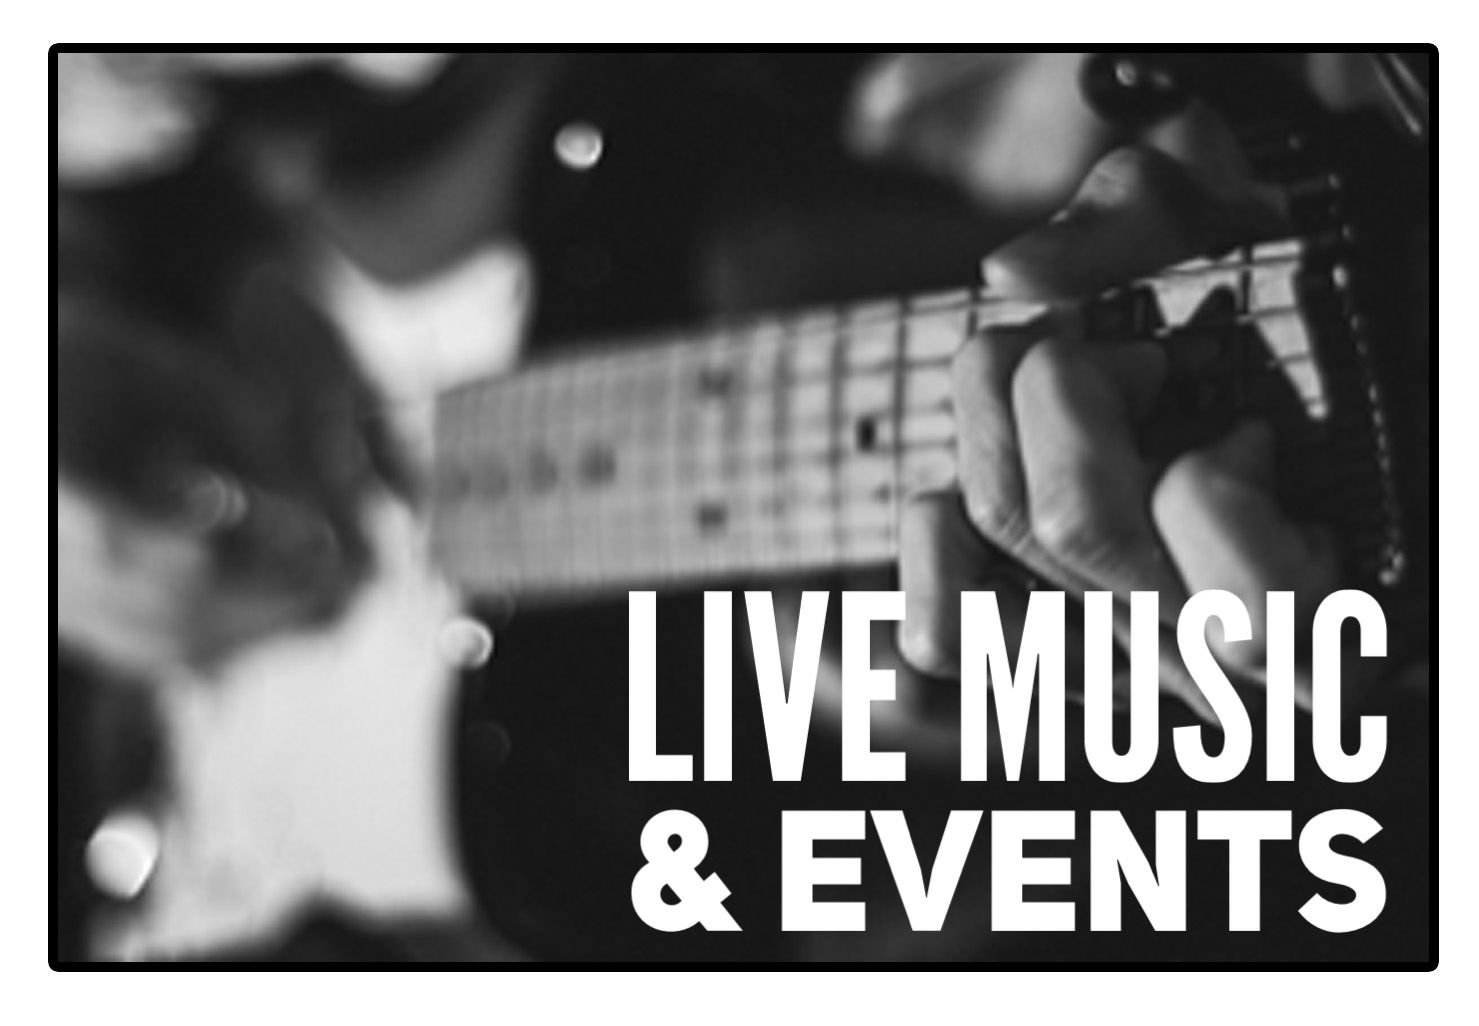 Industrial Taphouse, restaurant, bar, live music, beer, burgers, acoustic, cotu, rva, best restaurant